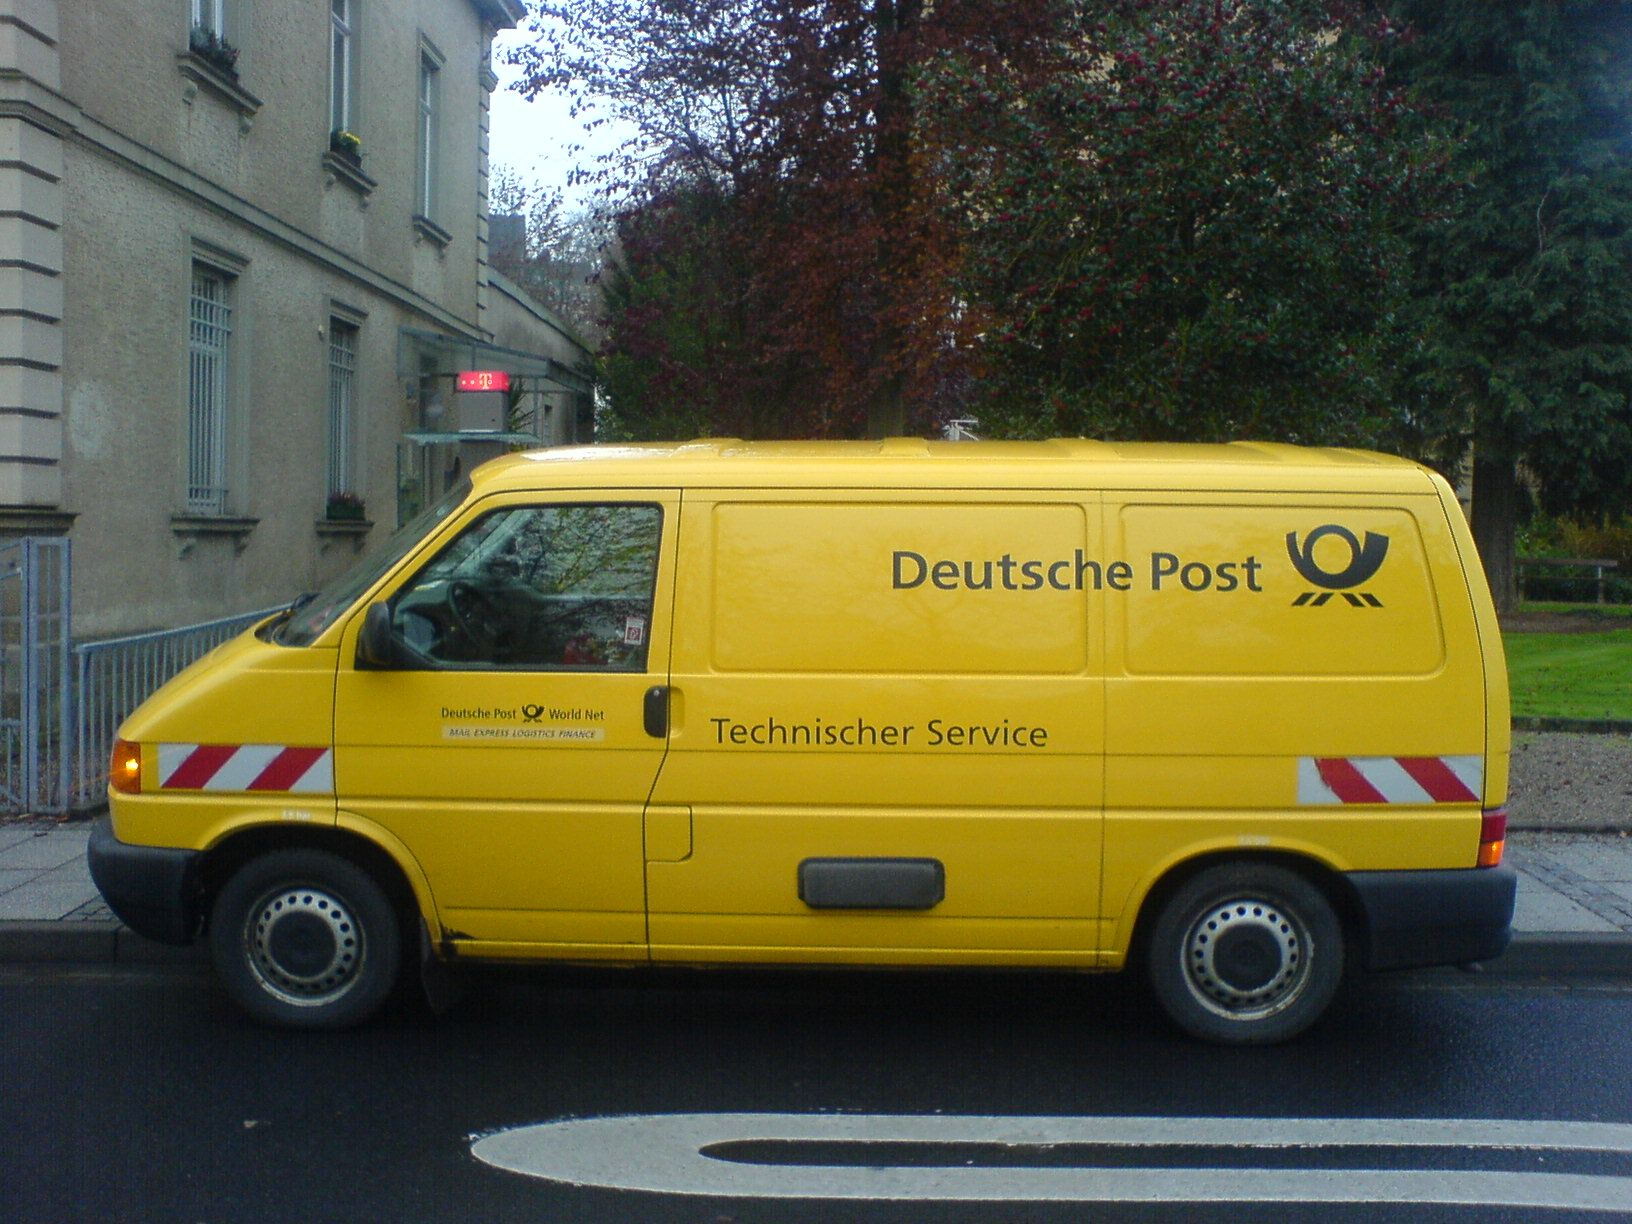 This is a van of a German company, Deutsche Post. They are